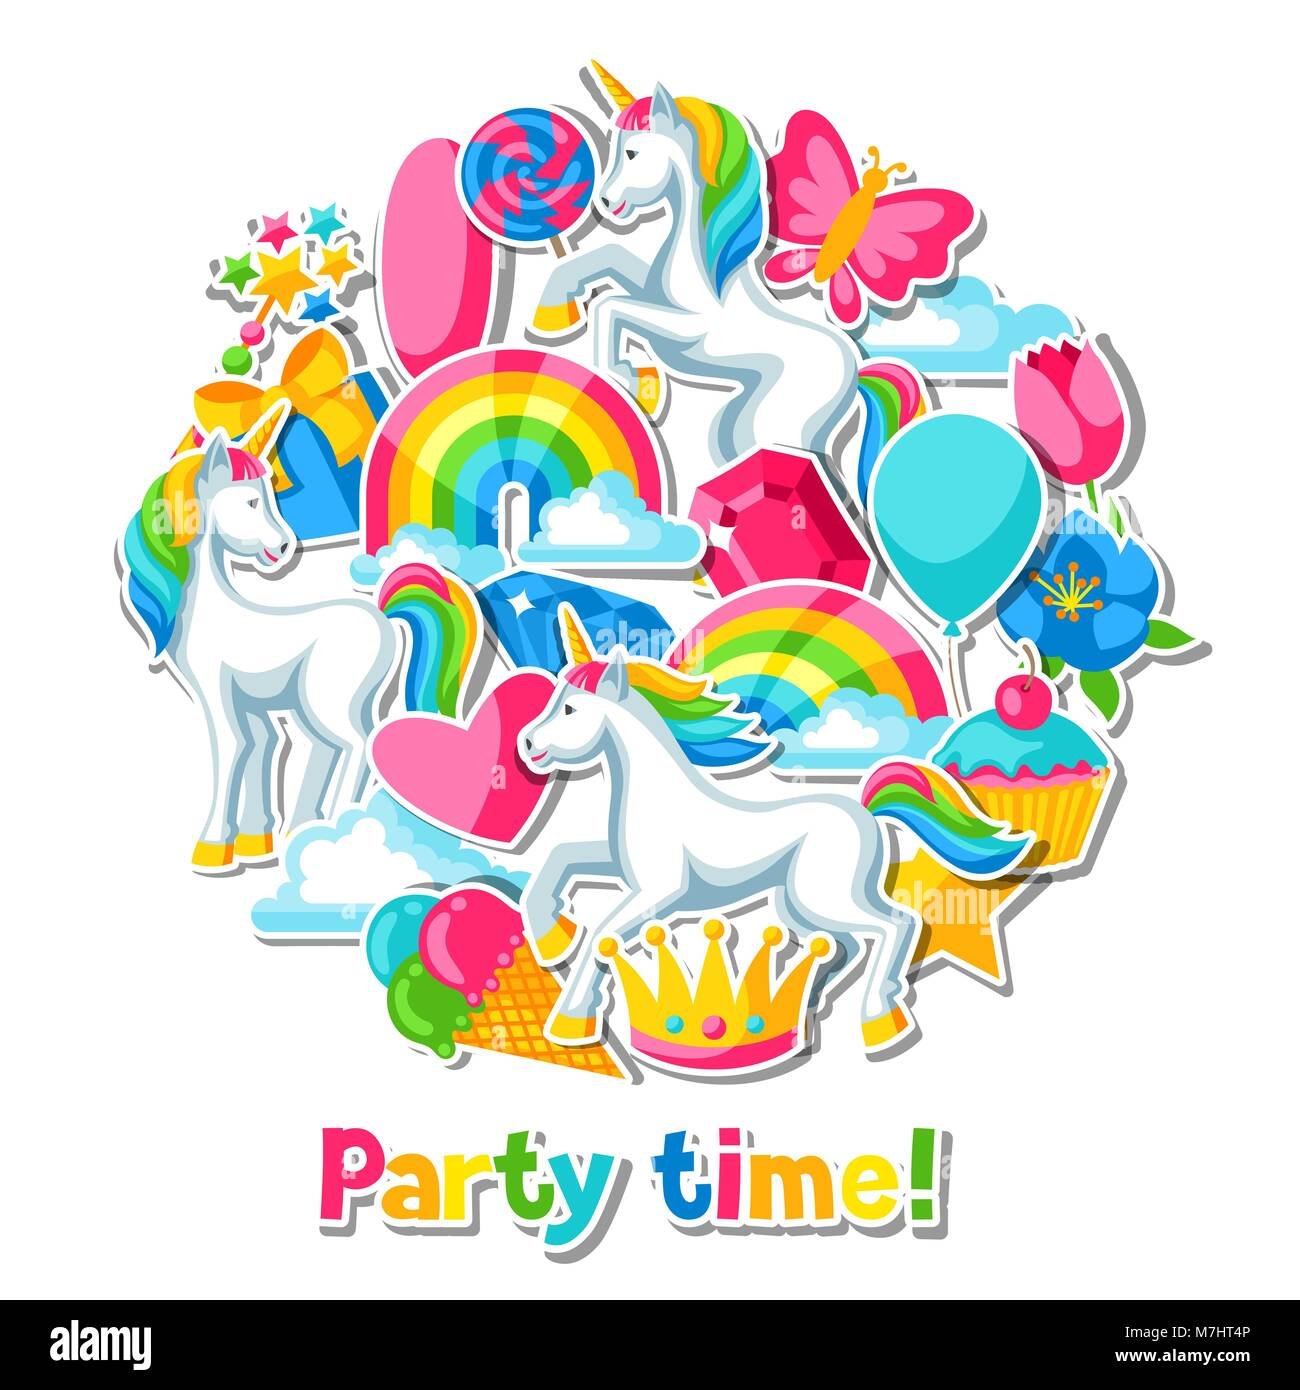 Party Time Party Time Card With Unicorn And Fantasy Items Stock Vector Art